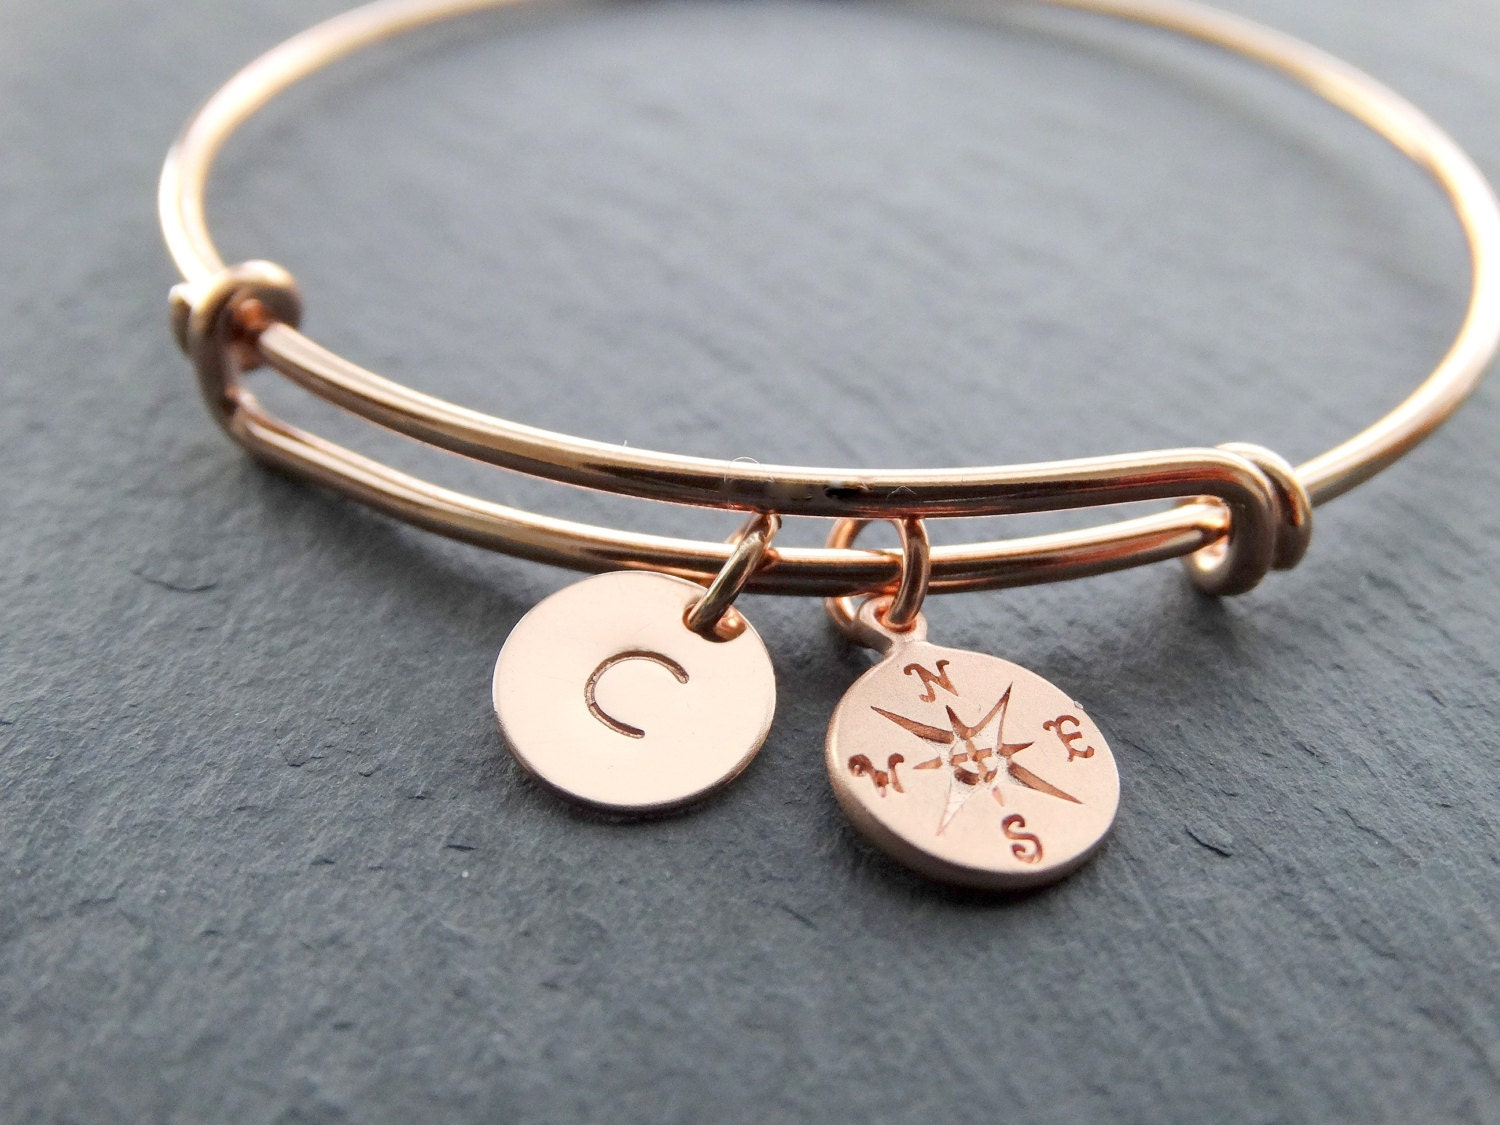 bracelet sallyclayjewellerydesign sally product personalised necklace bracelets or storyteller original personalized your clay bangle by story bangles